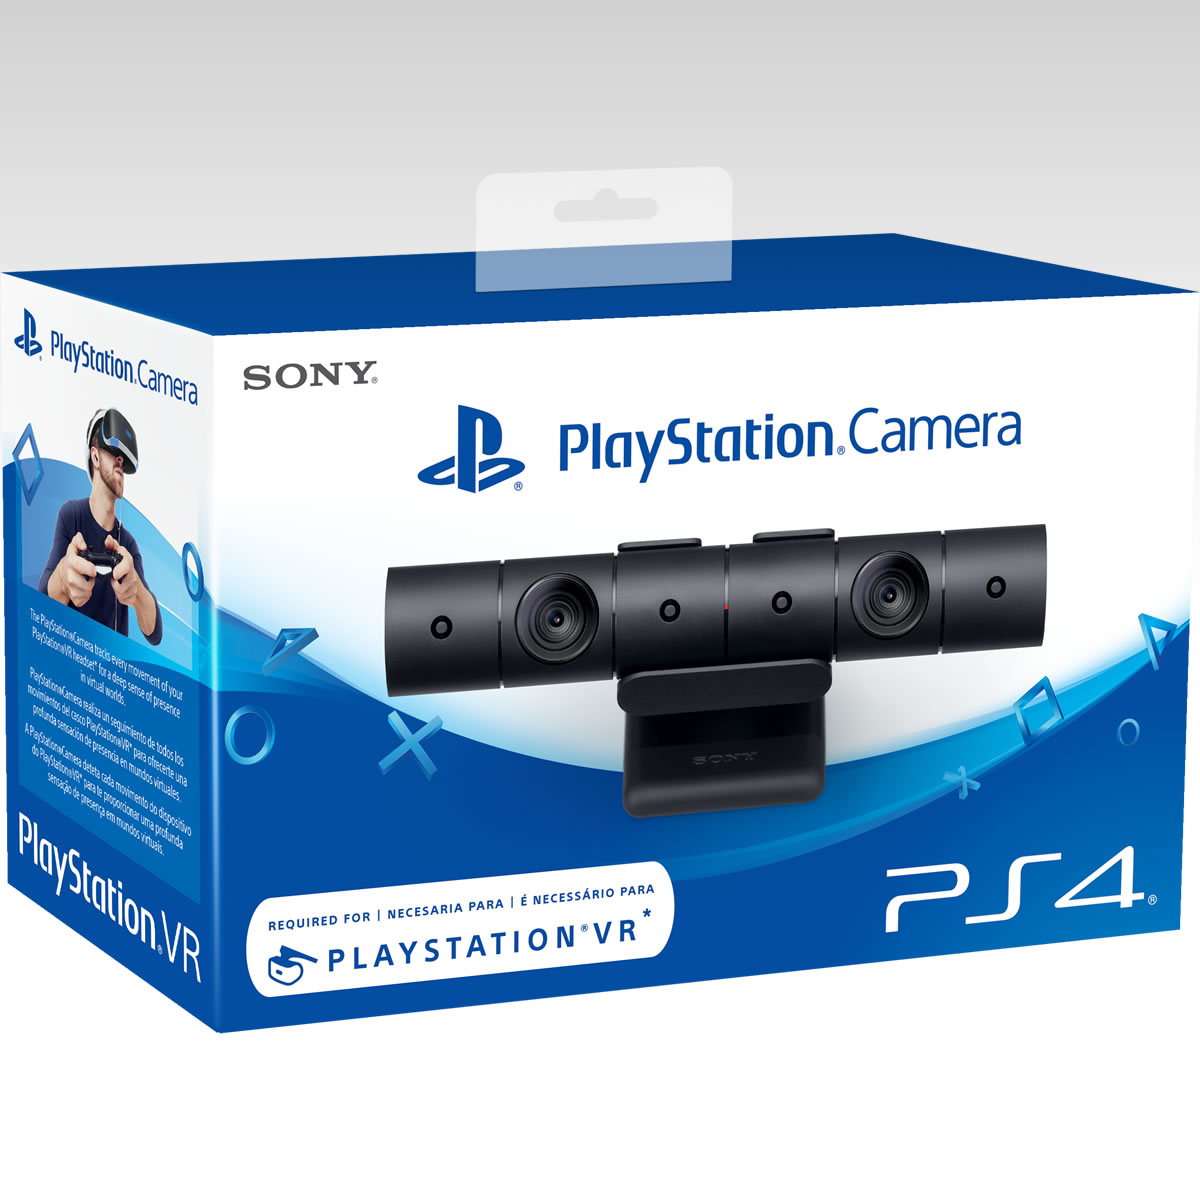 SONY OFFICIAL New PLAYSTATION 4 CAMERA v2 - SONY ΕΠΙΣΗΜΗ ΝΕΑ PLAYSTATION 4 CAMERA v2 (PS4, PSVR)